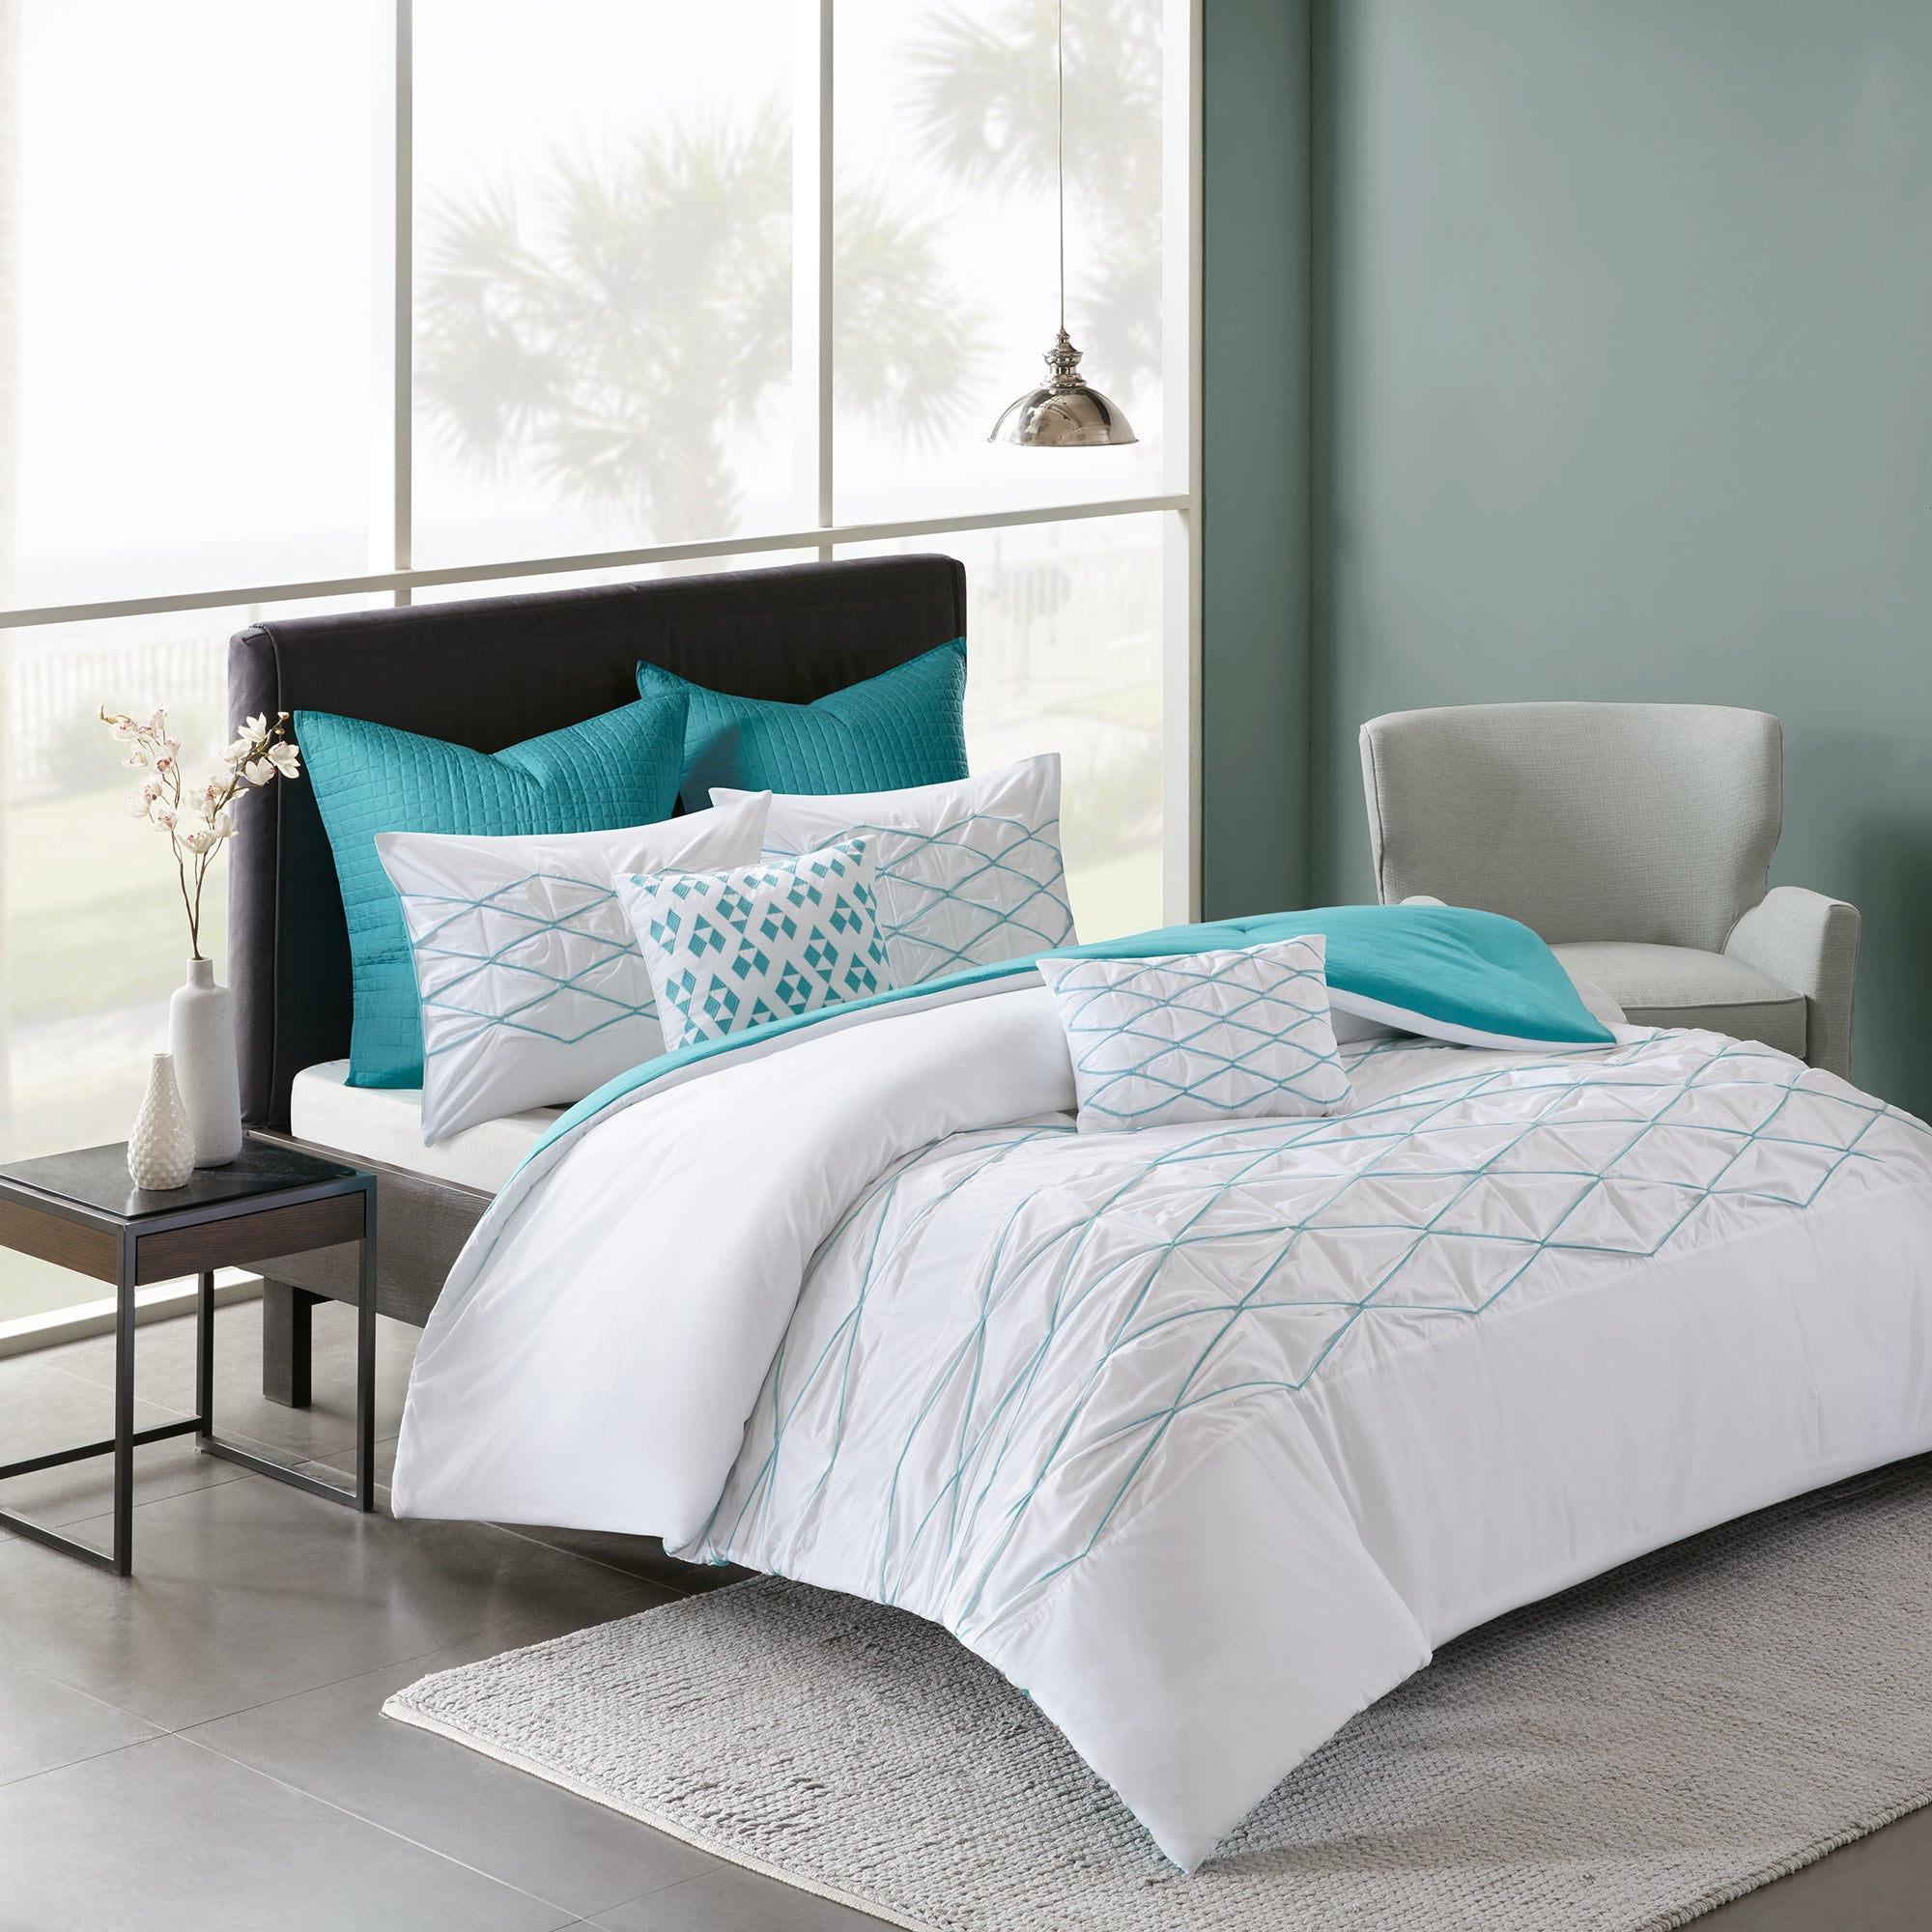 Urban Habitat Bellina White Aqua 7 Piece Cotton Printed forter